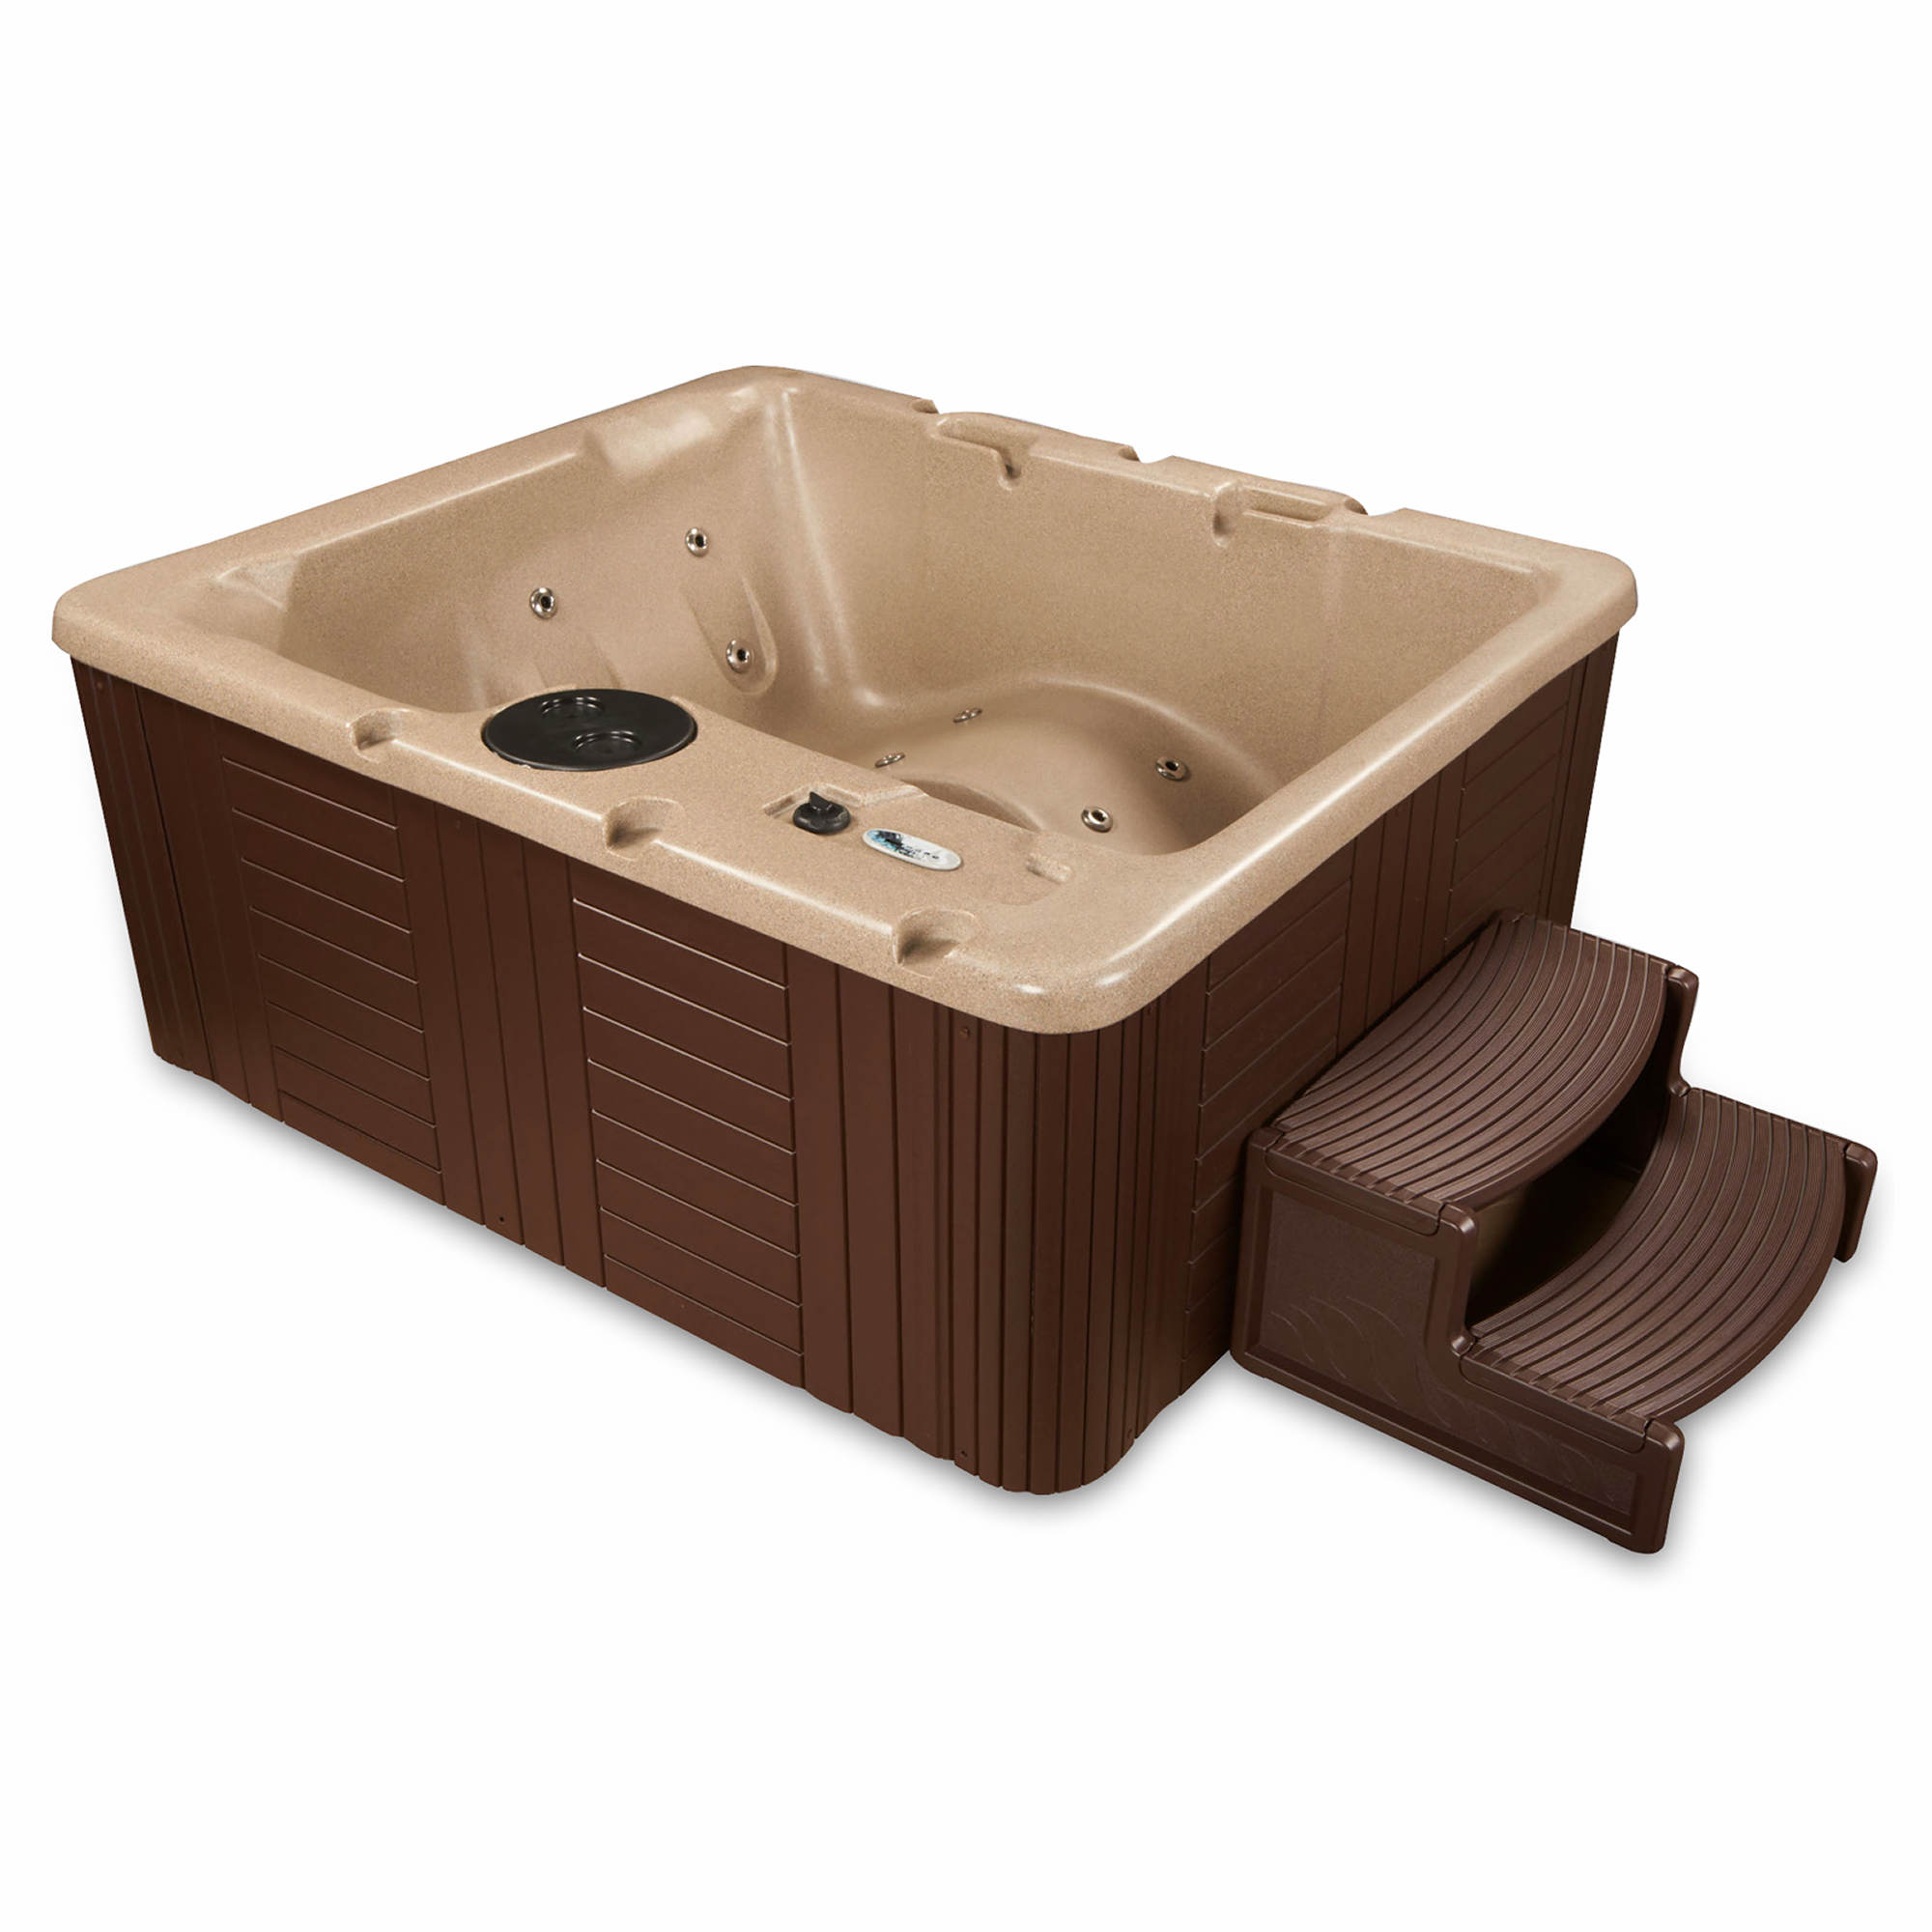 bathtub hot standing good stone free less tubs tub large for outdoor marble bathtubs